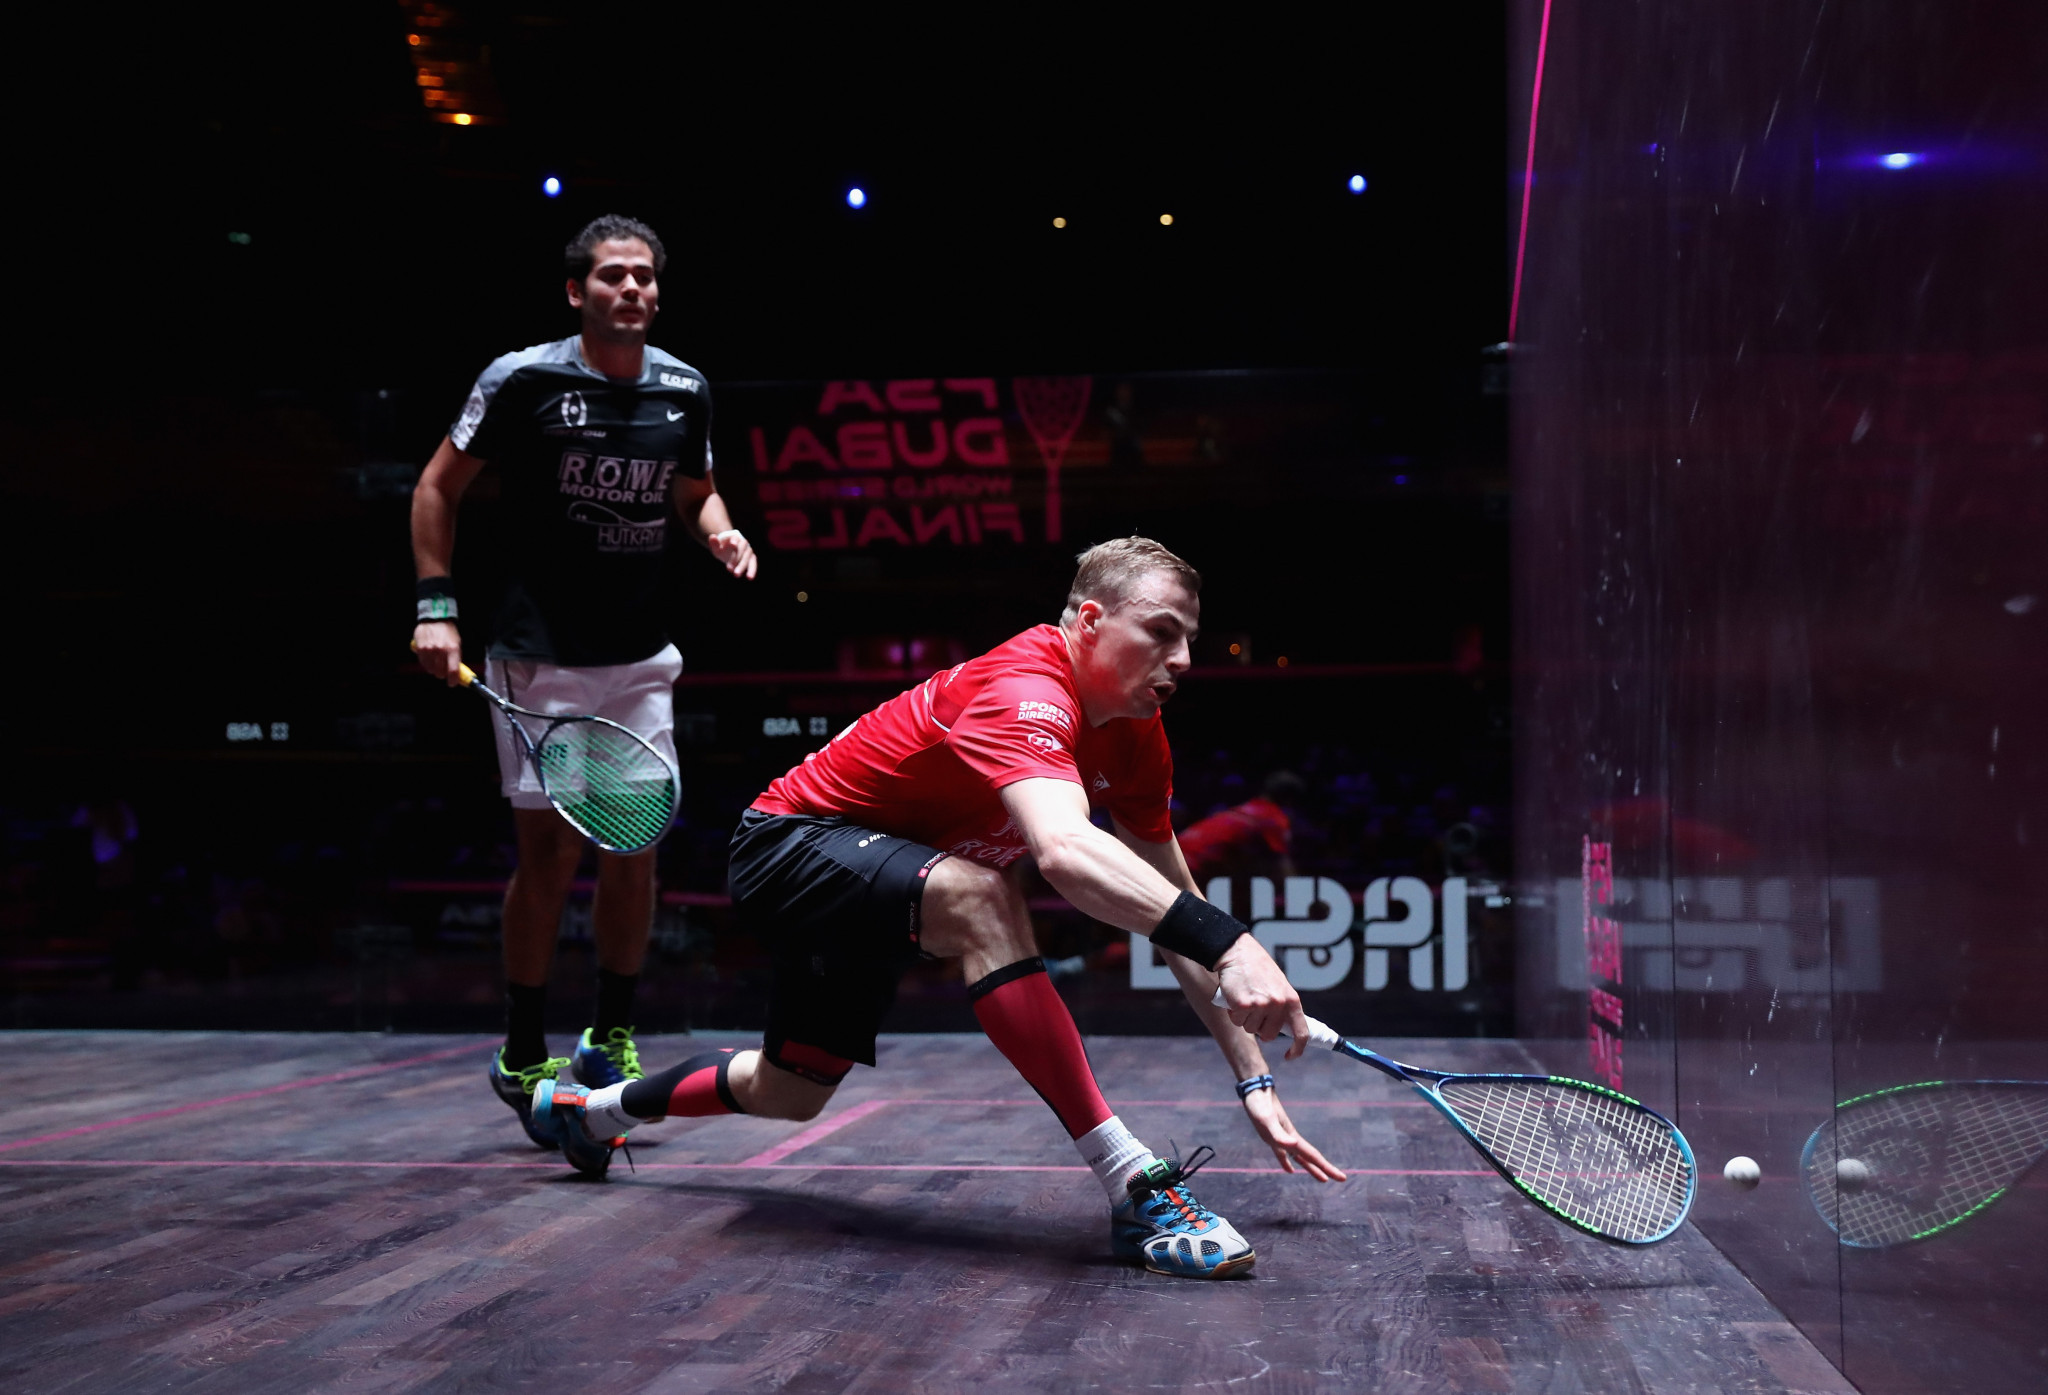 England squash players Matthew and Massaro named top seeds for Gold Coast 2018